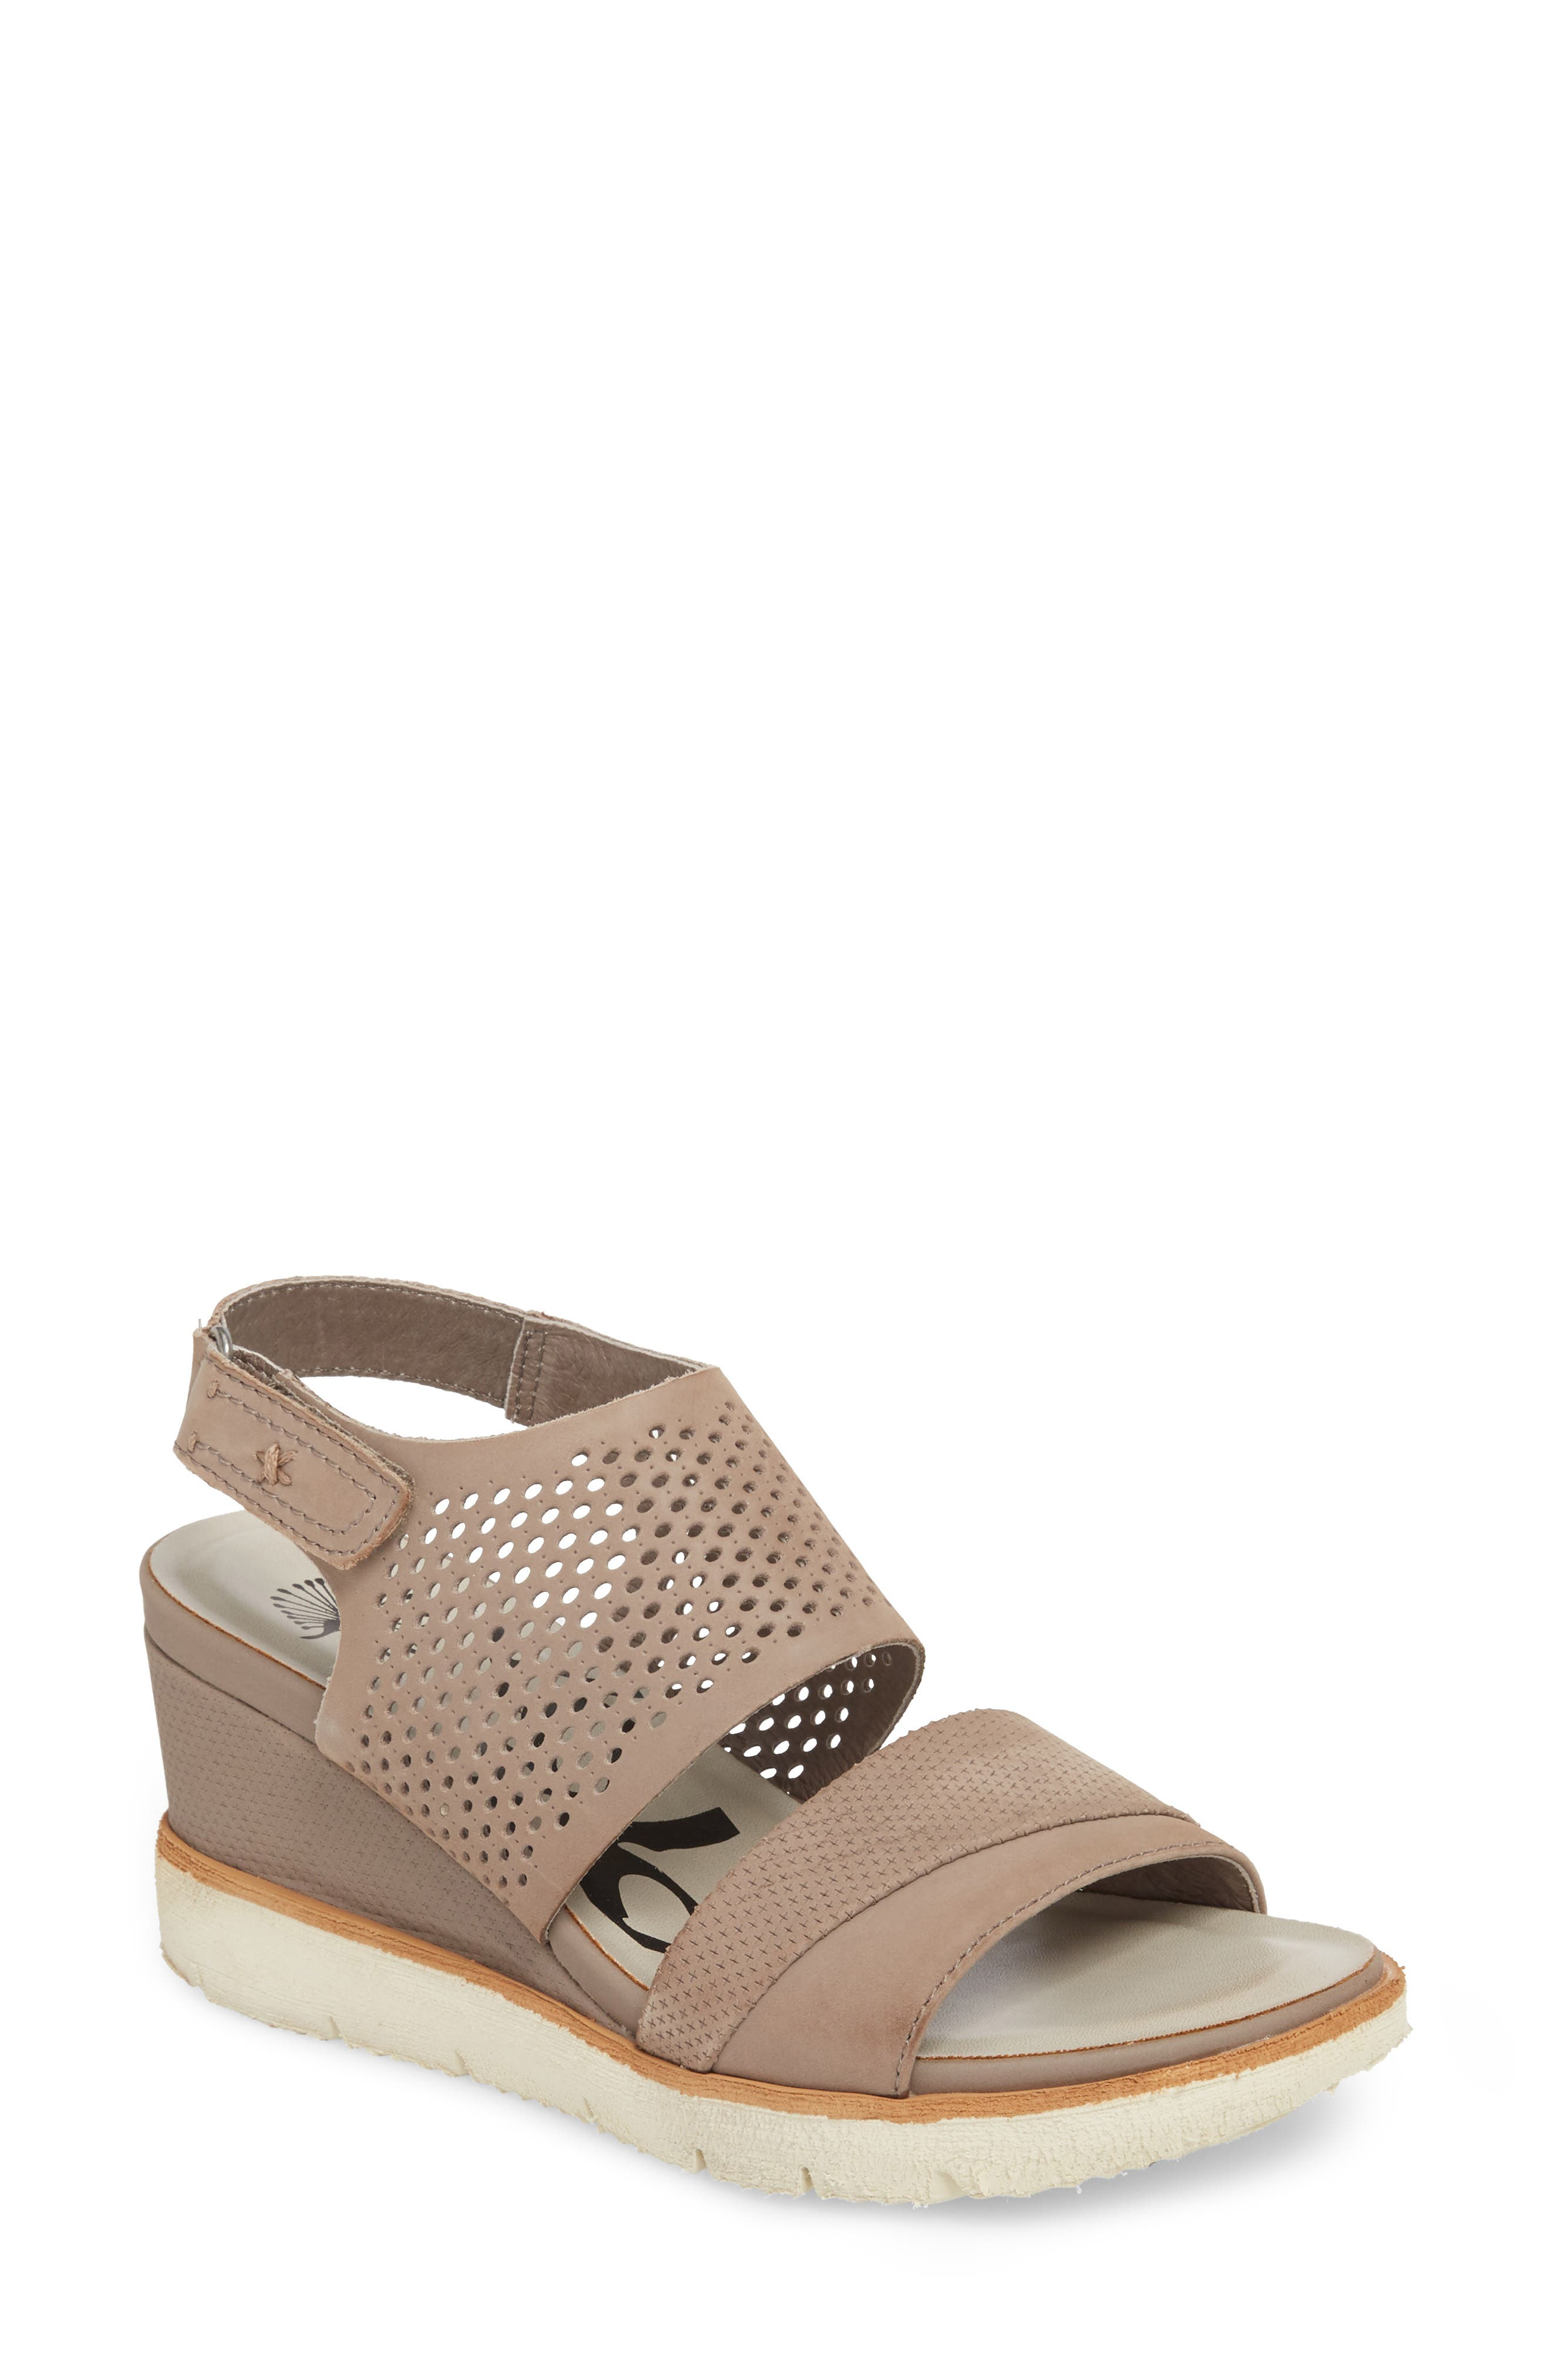 OTBT Milky Way Wedge Sandal, Main, color, COCOA LEATHER